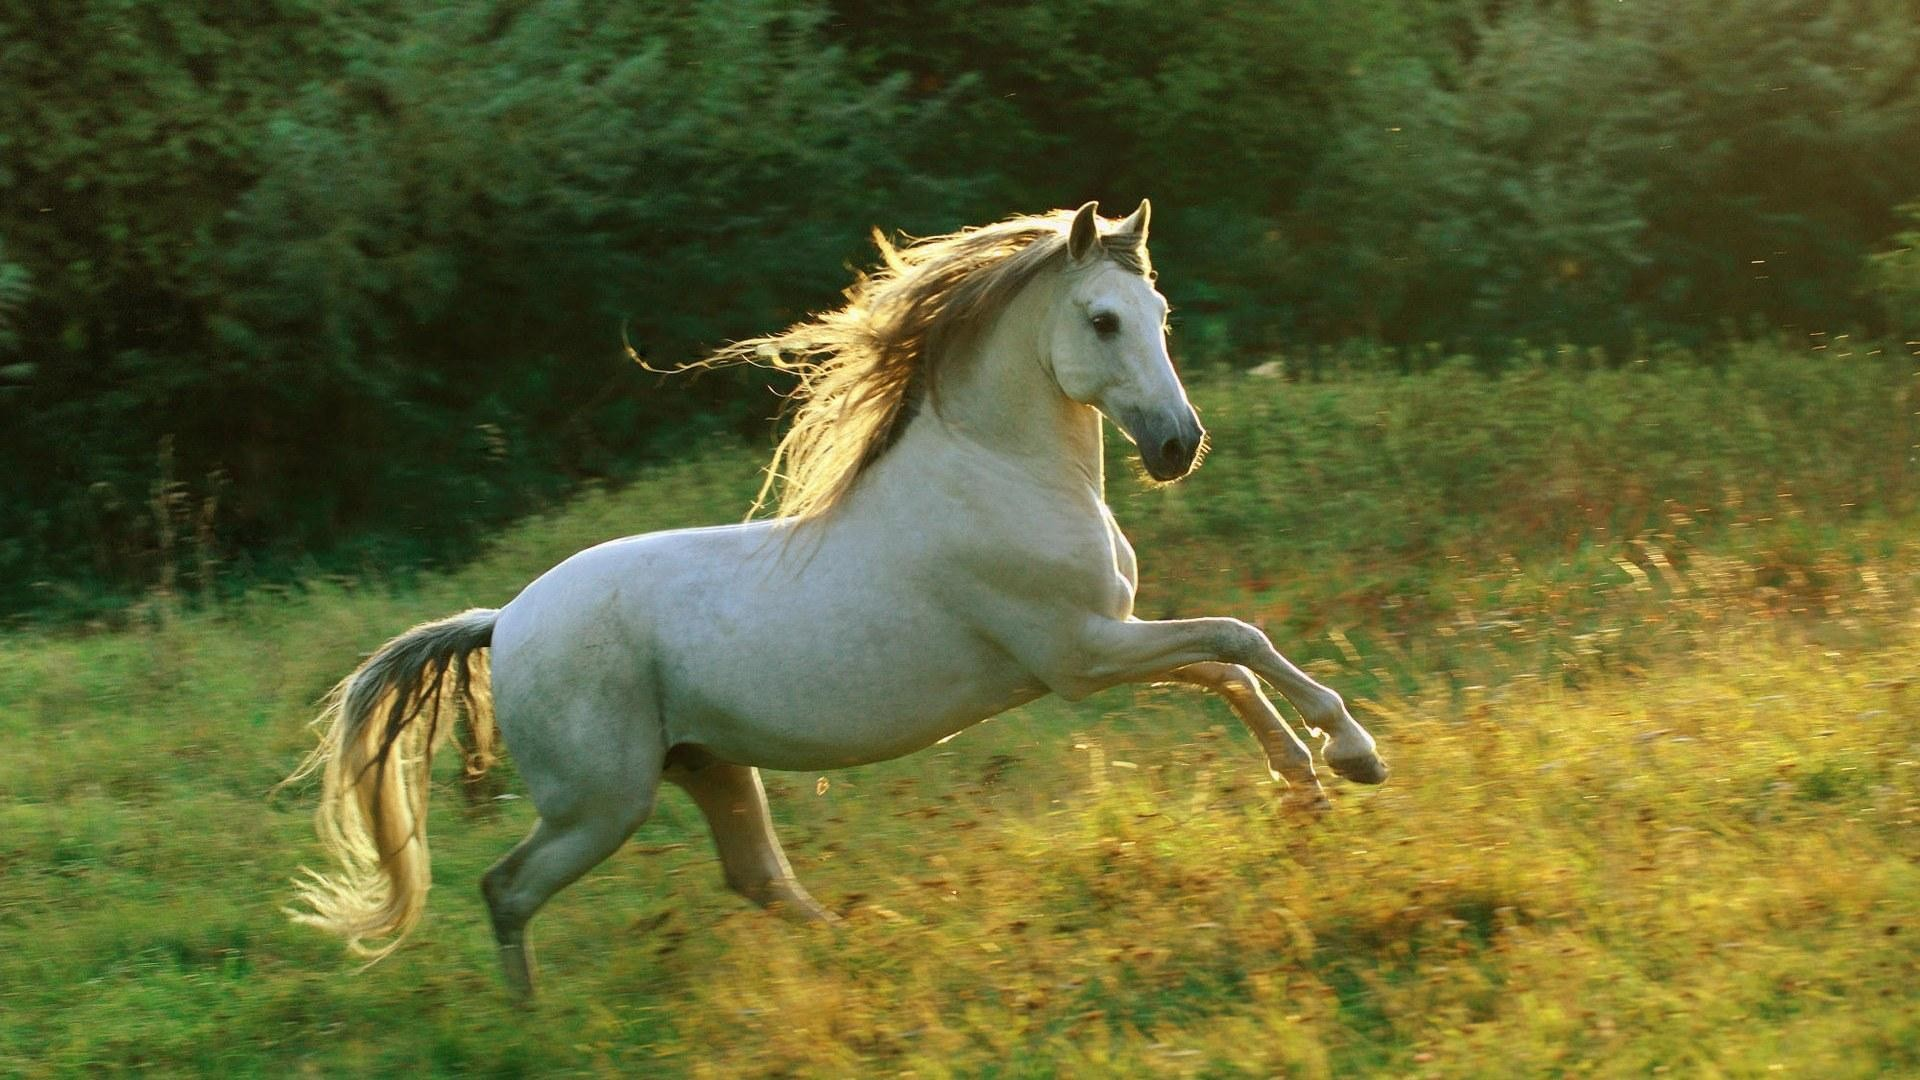 horse wallpapers category of free hd wallpapers horse screensavers is .